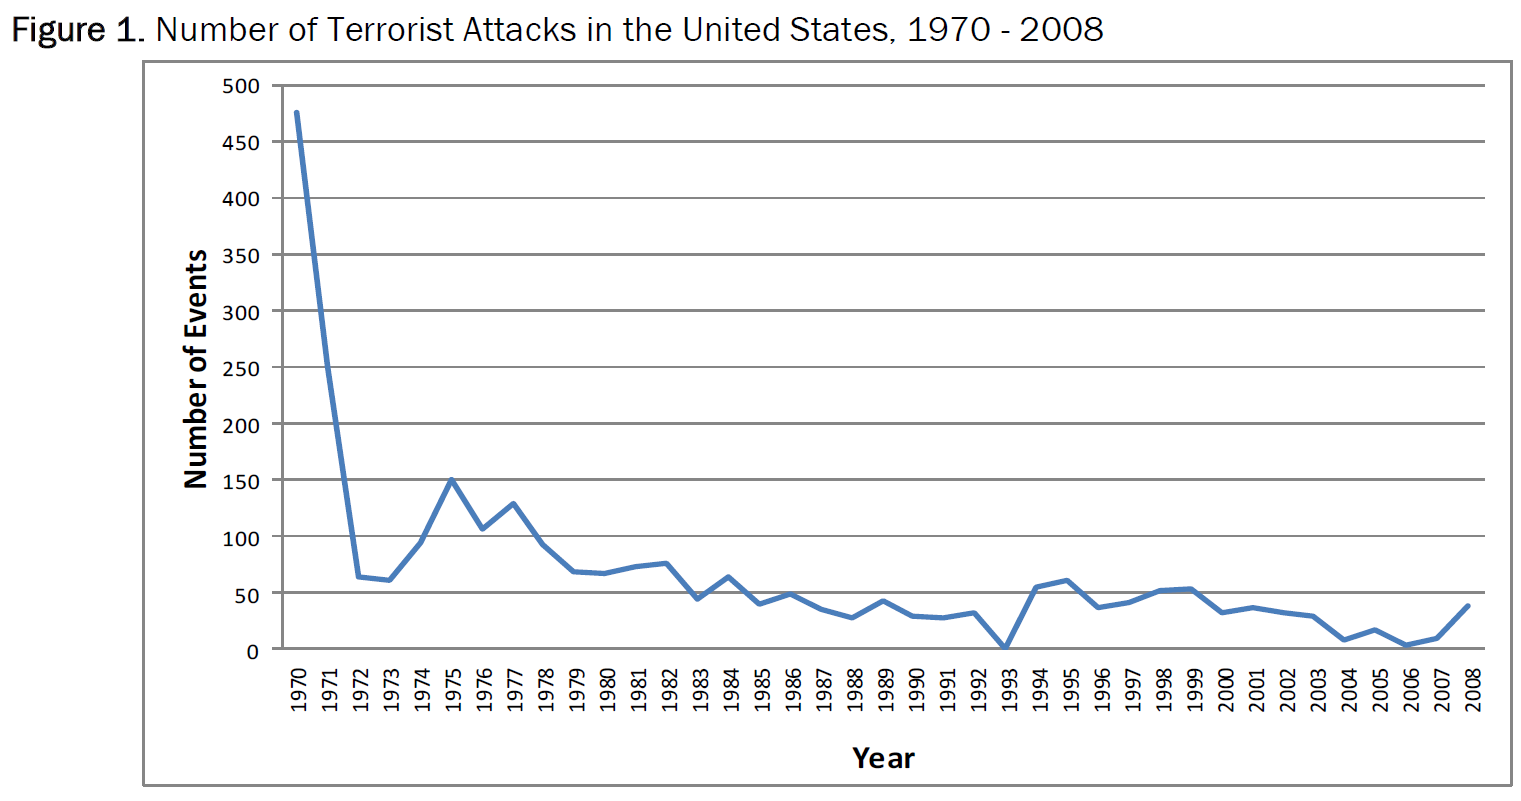 the issue of domestic terrorism in the united states These days, terrorism seems not just more lethal and more common, but more widespread the death toll in recent weeks speaks for itself: 22 people dead in bangladesh, 49 gone in the united states, 44 gone in turkey, 292 gone in iraq, then another 37, another 12, yet another 12 and by one oft-cited.